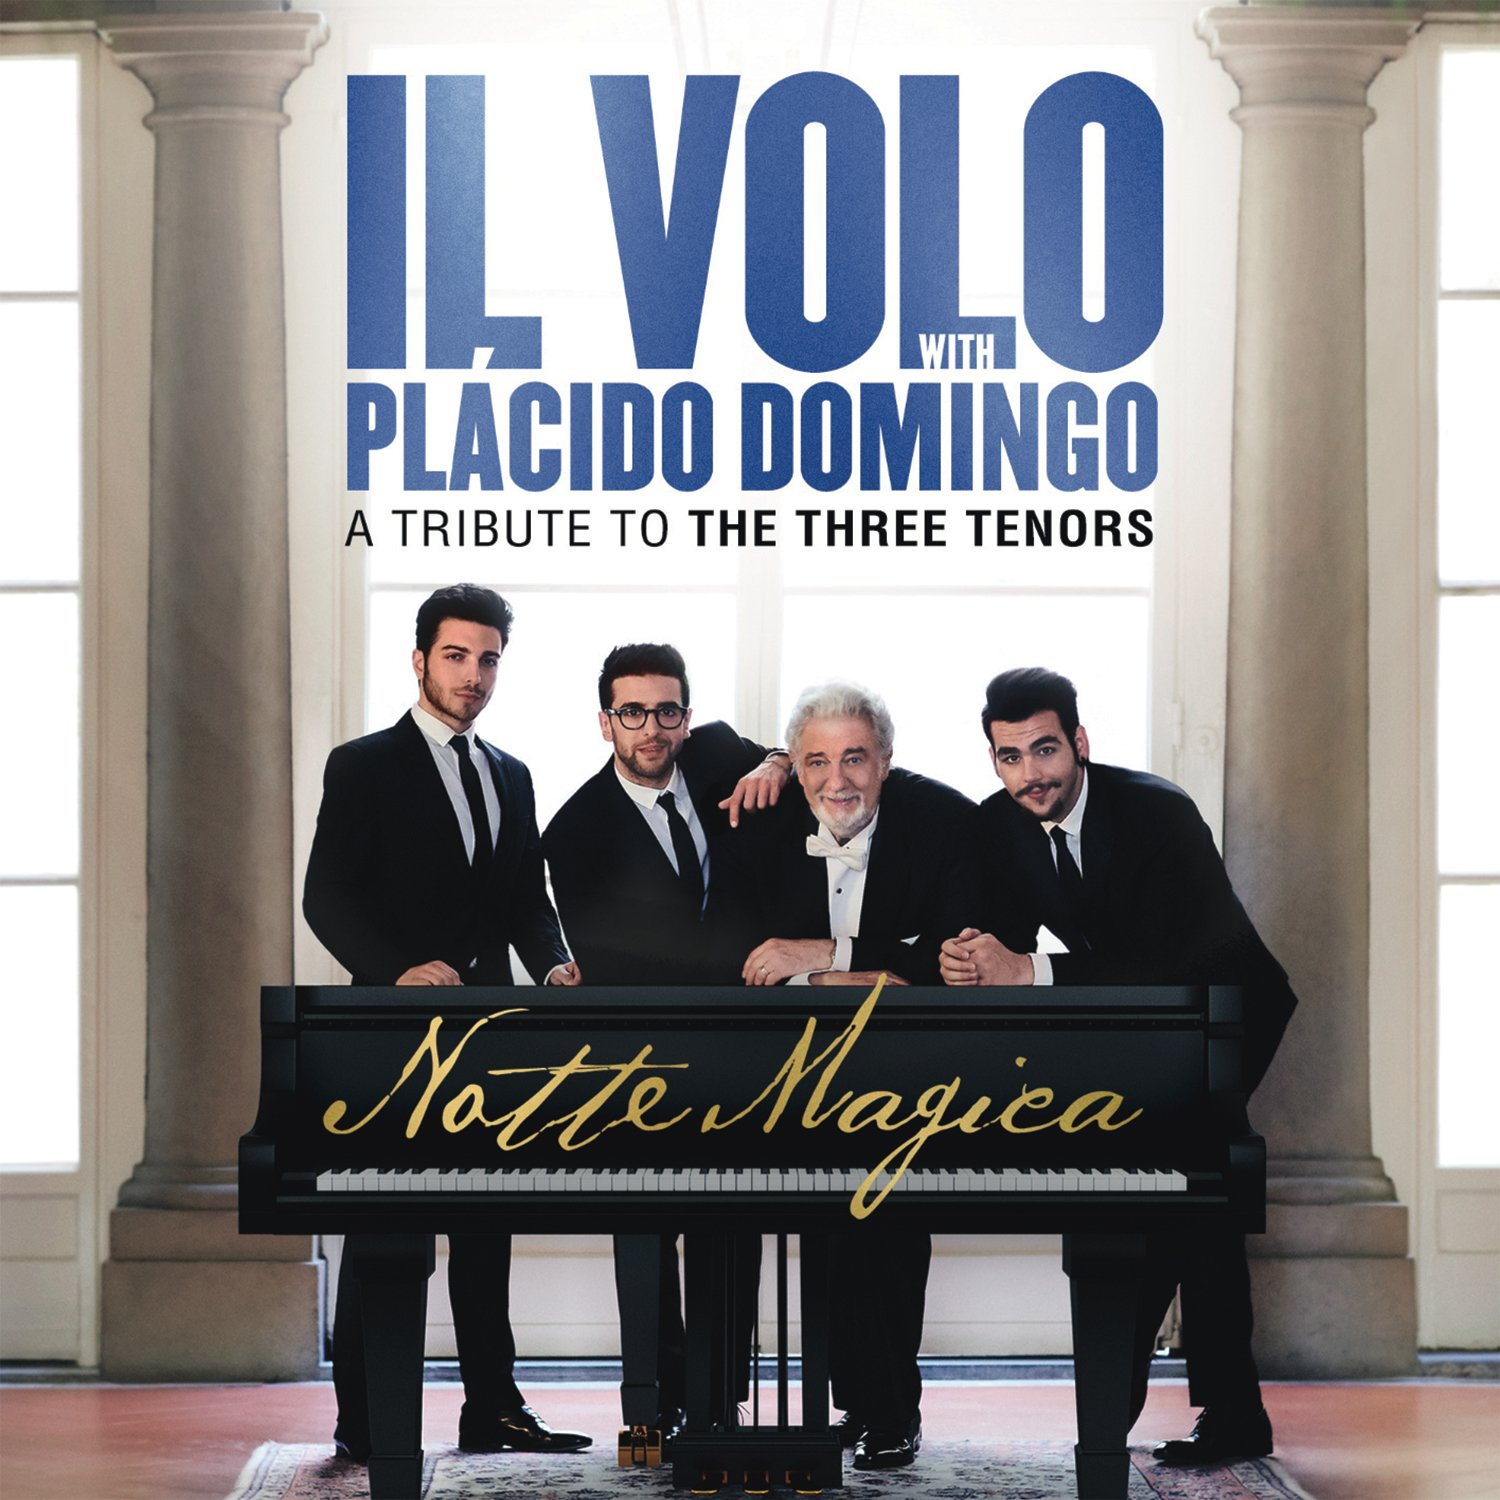 CD : Il Volo - Notte Magica - A Tribute to the Three Tenors (CD)